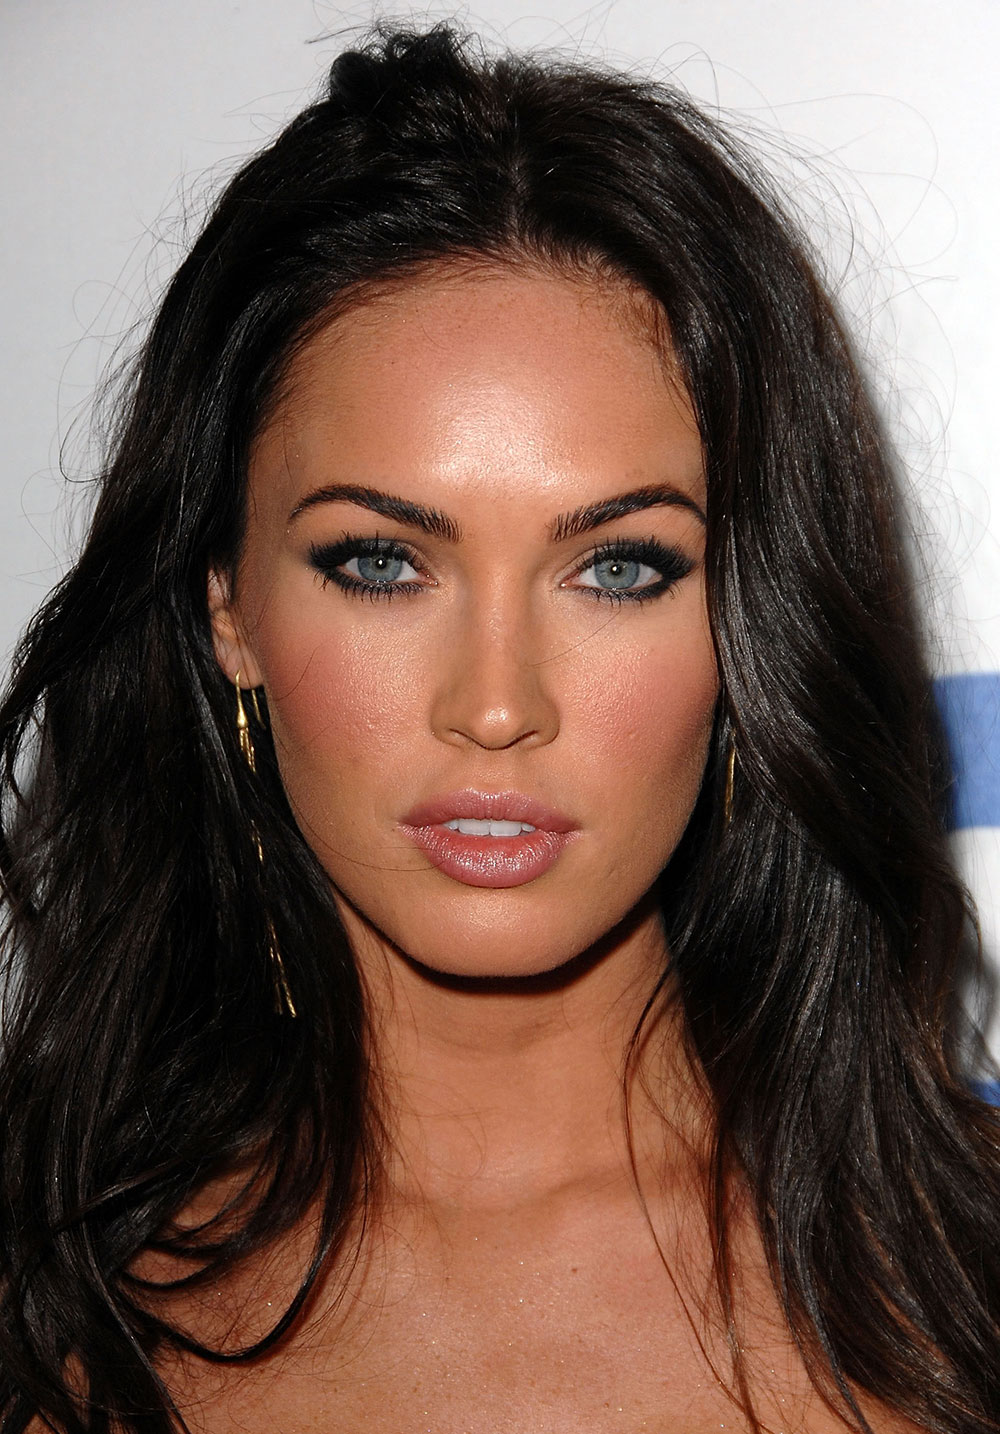 How To Get Megan Fox's Eyebrows